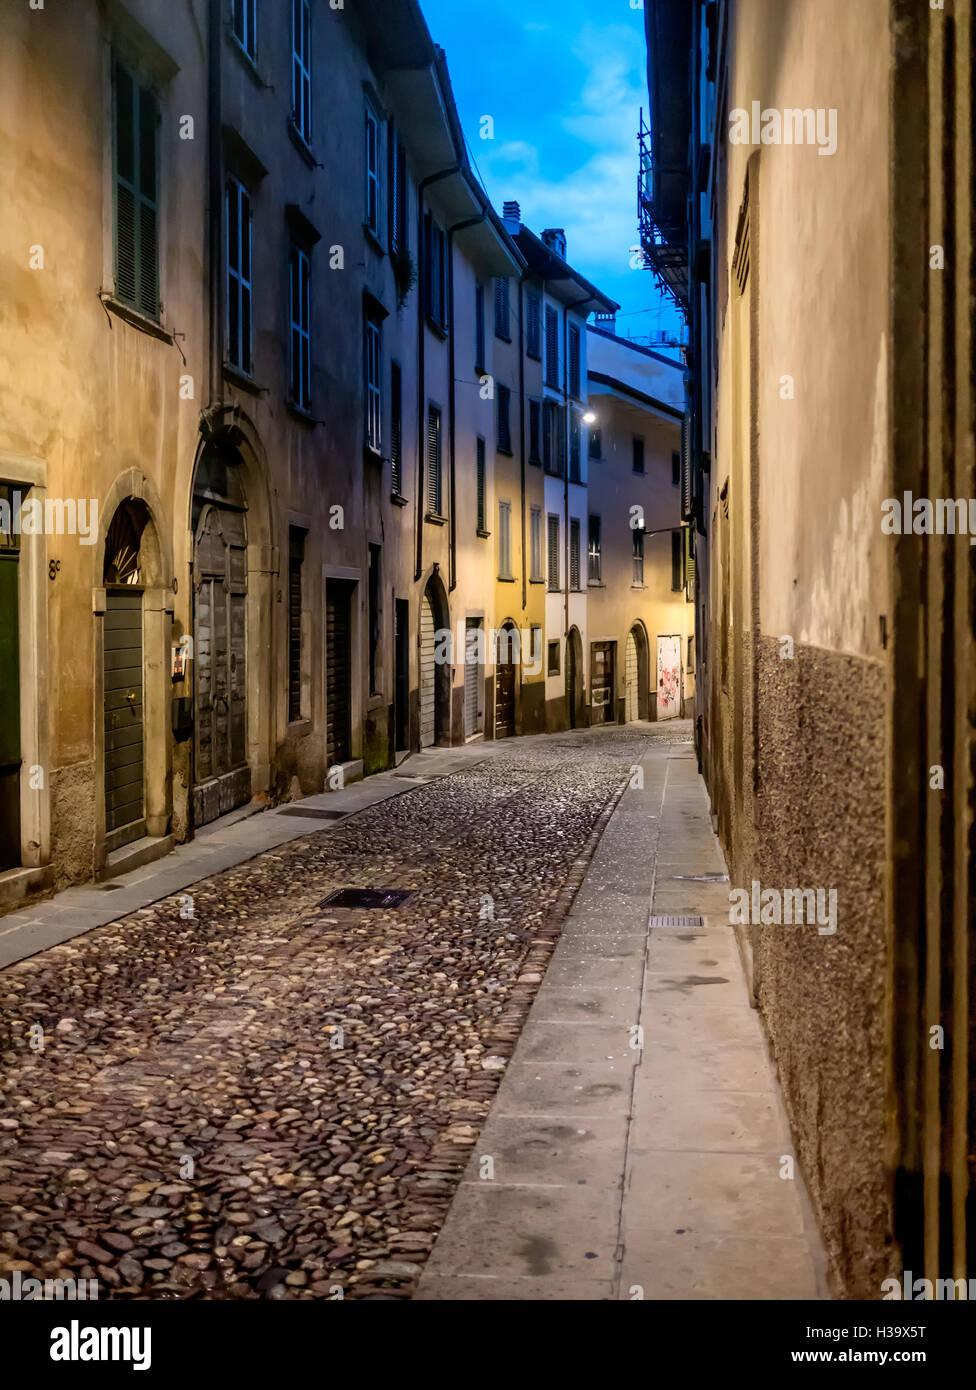 Street at night in Old Town of Bergamo, Italy Stock Photo